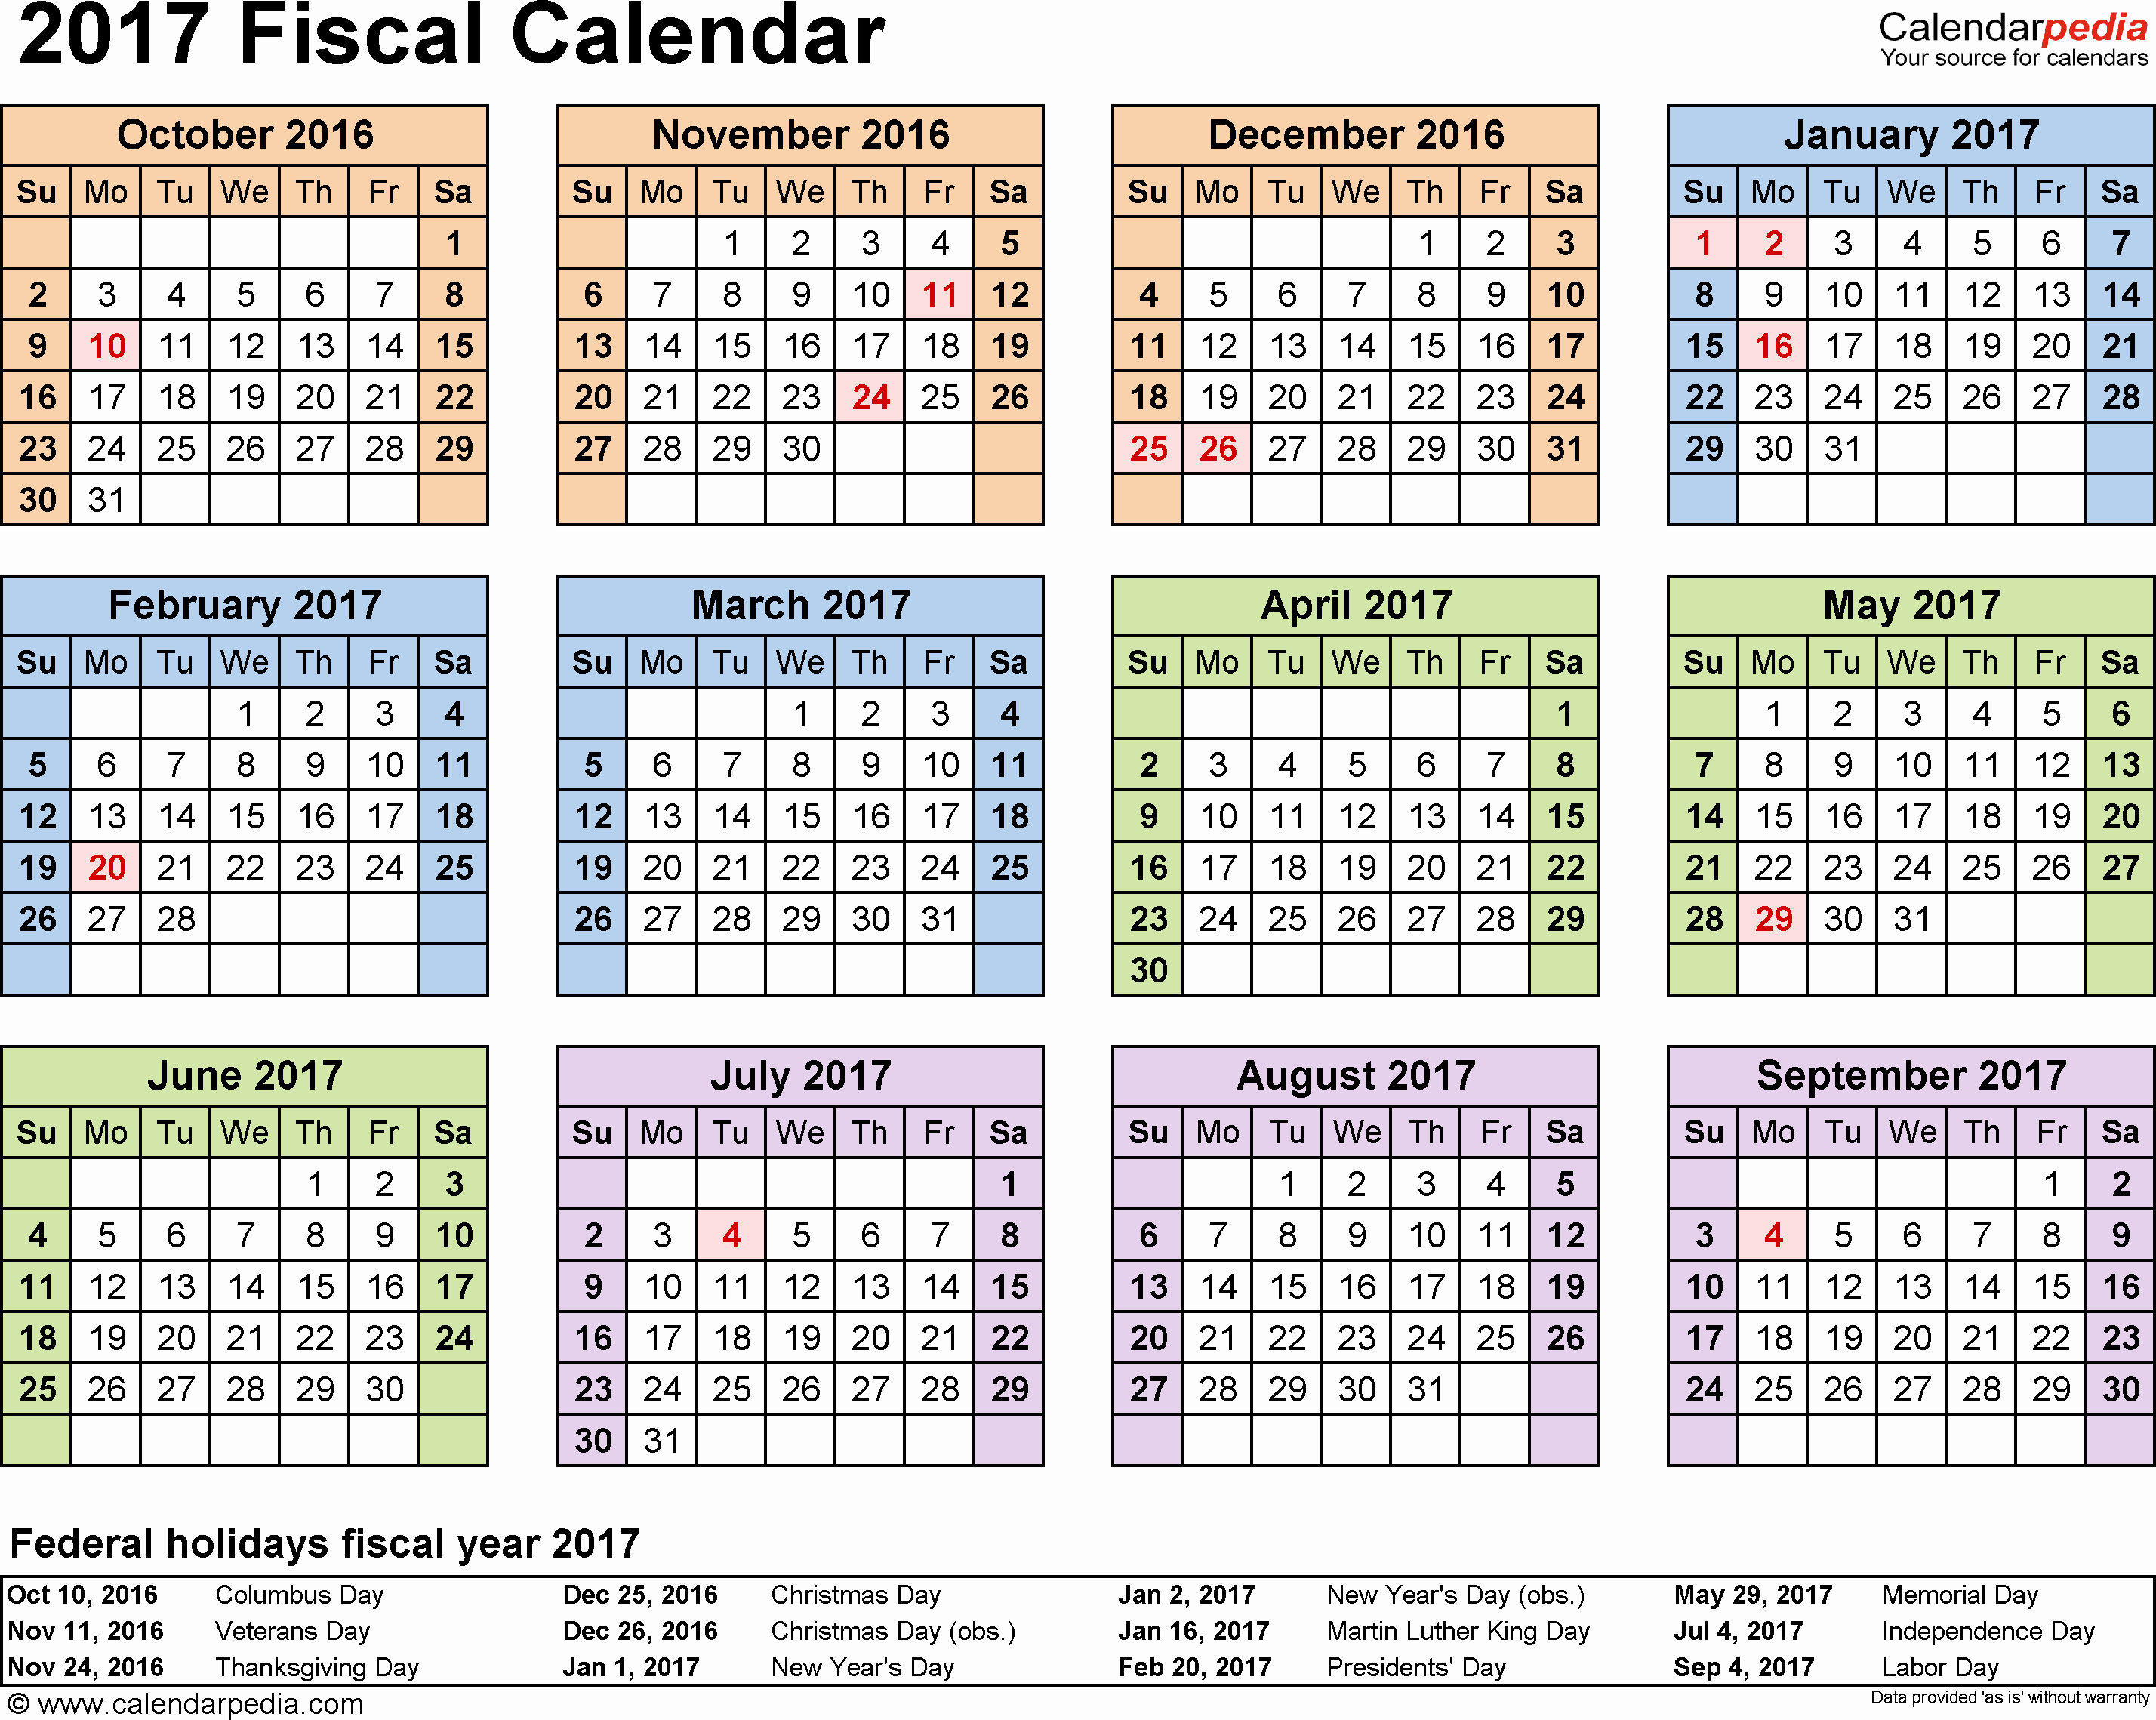 Blank Calendar 2016-17 Unique Fiscal Calendars 2017 as Free Printable Word Templates